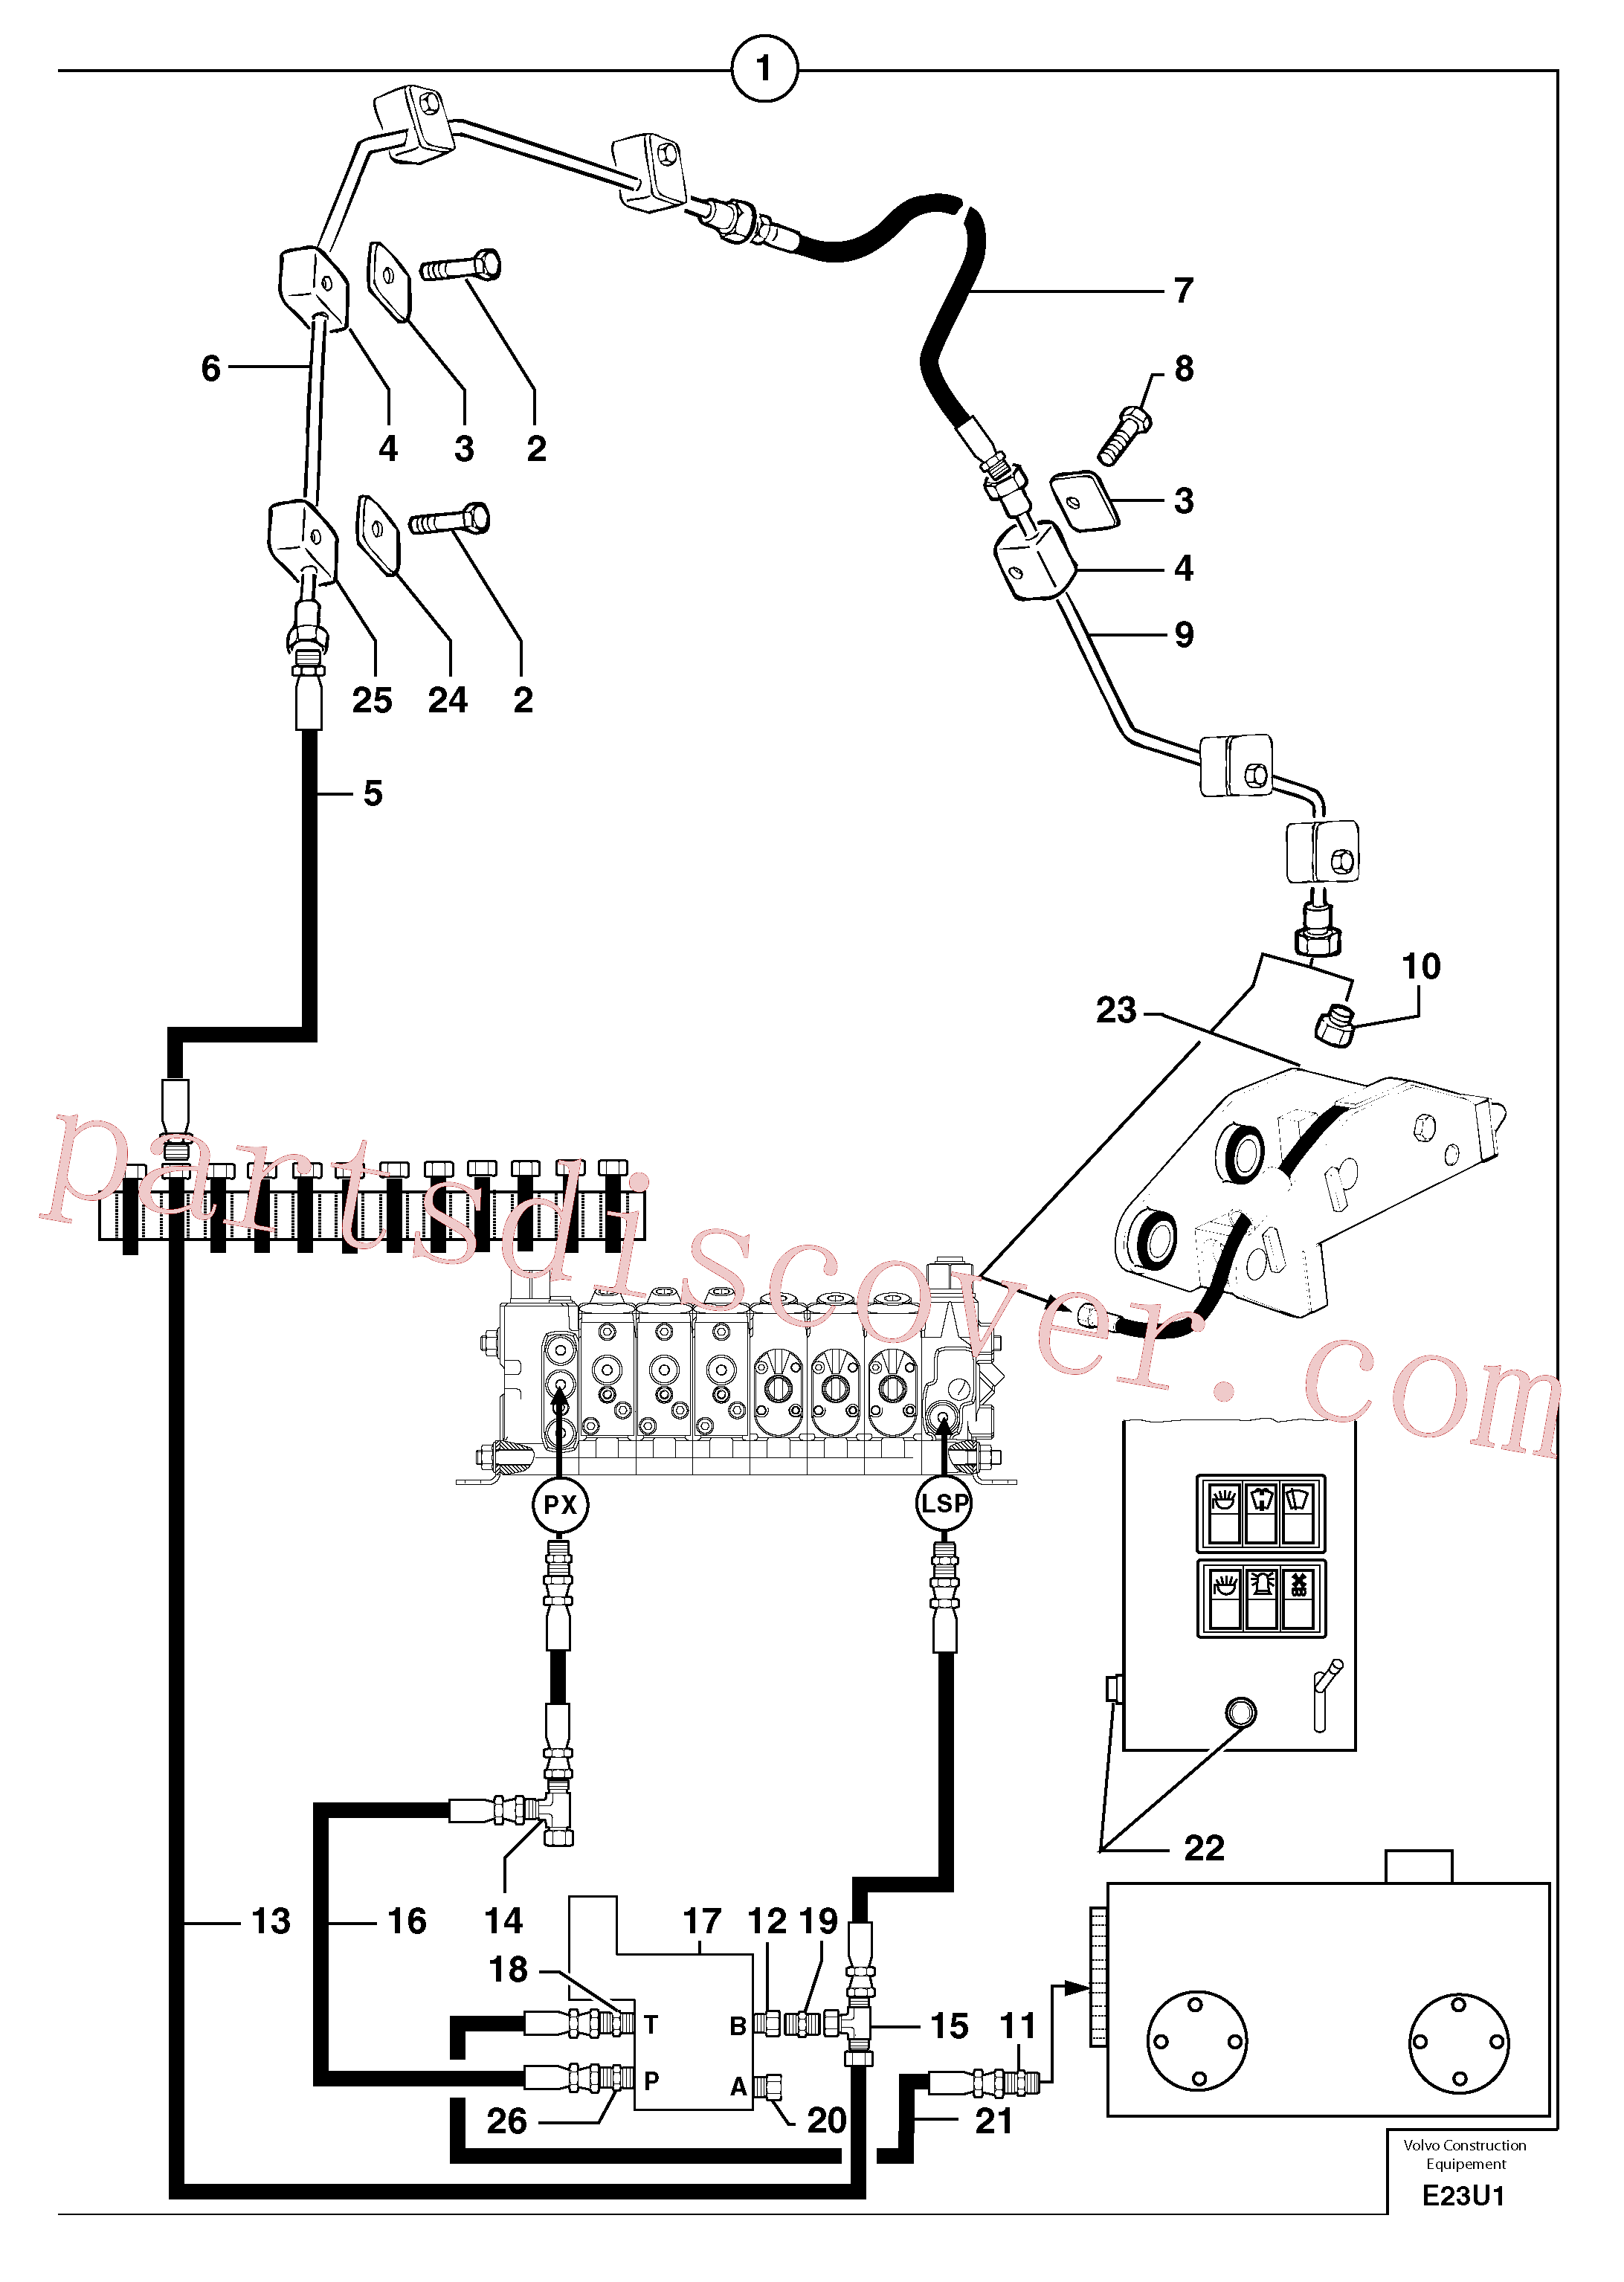 PJ5900274 for Volvo Hydraulic circuit ( snap-action attachment )(E23U1 assembly)